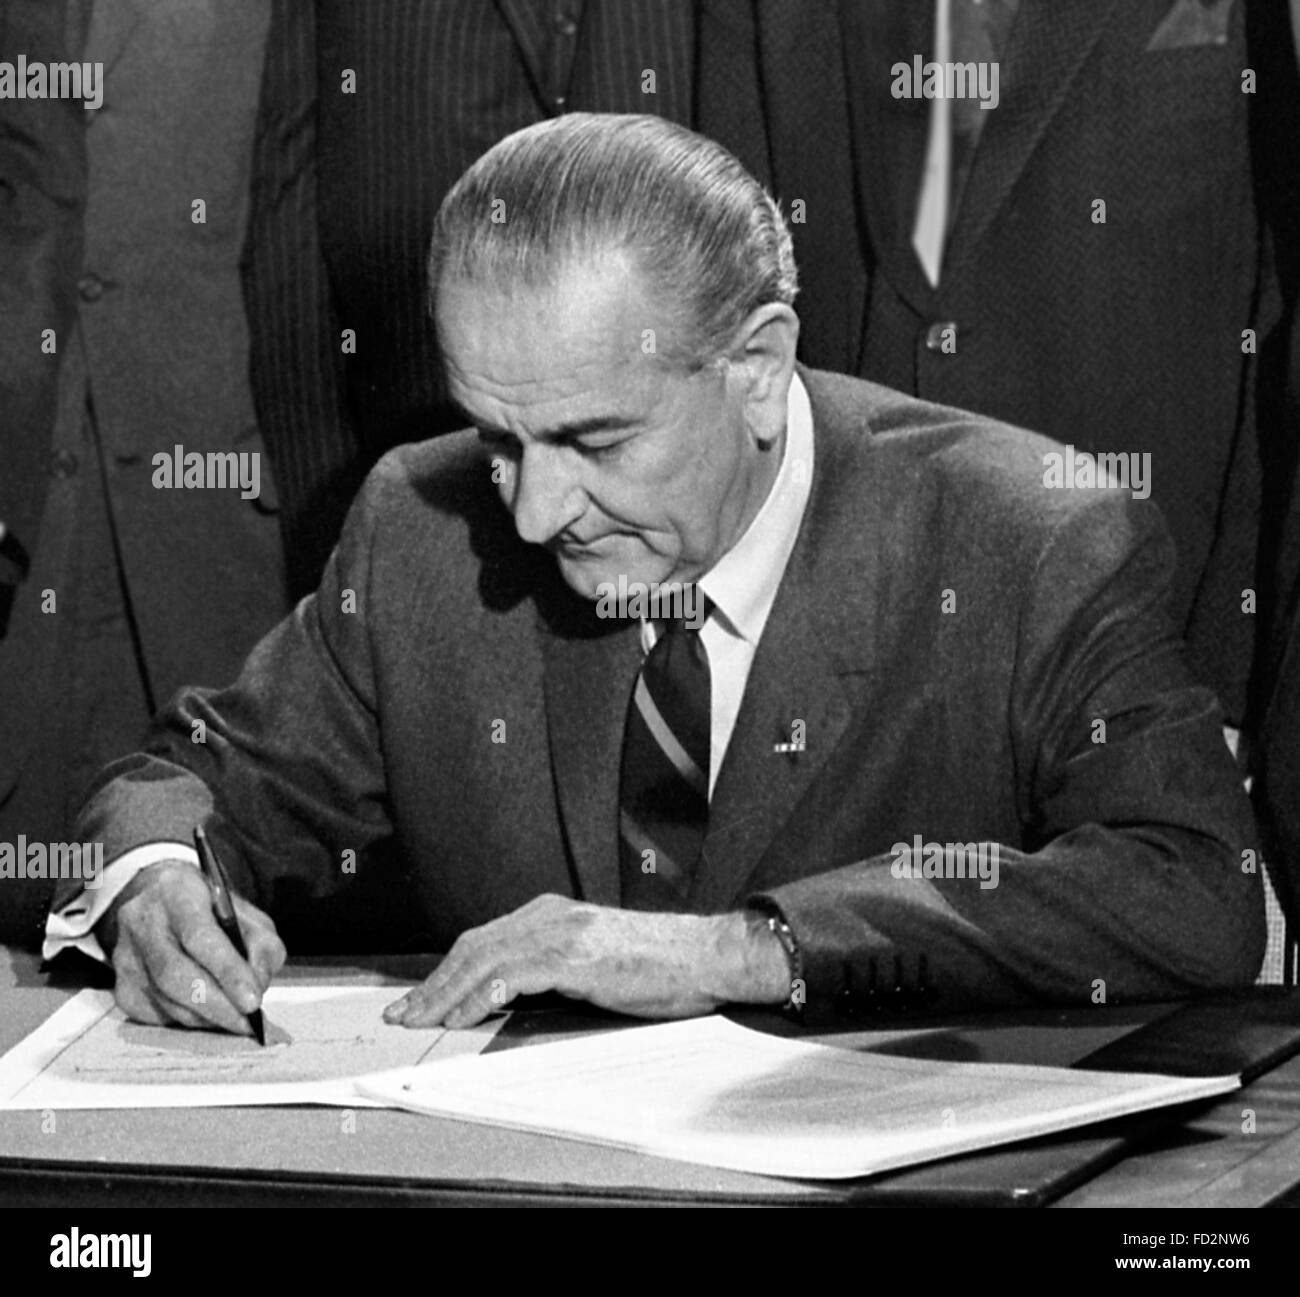 Lyndon B Johnson, the 36th President of the USA, signing the 1968 Civil Rights Act, 11th April 1968. Photo by Warren Stock Photo